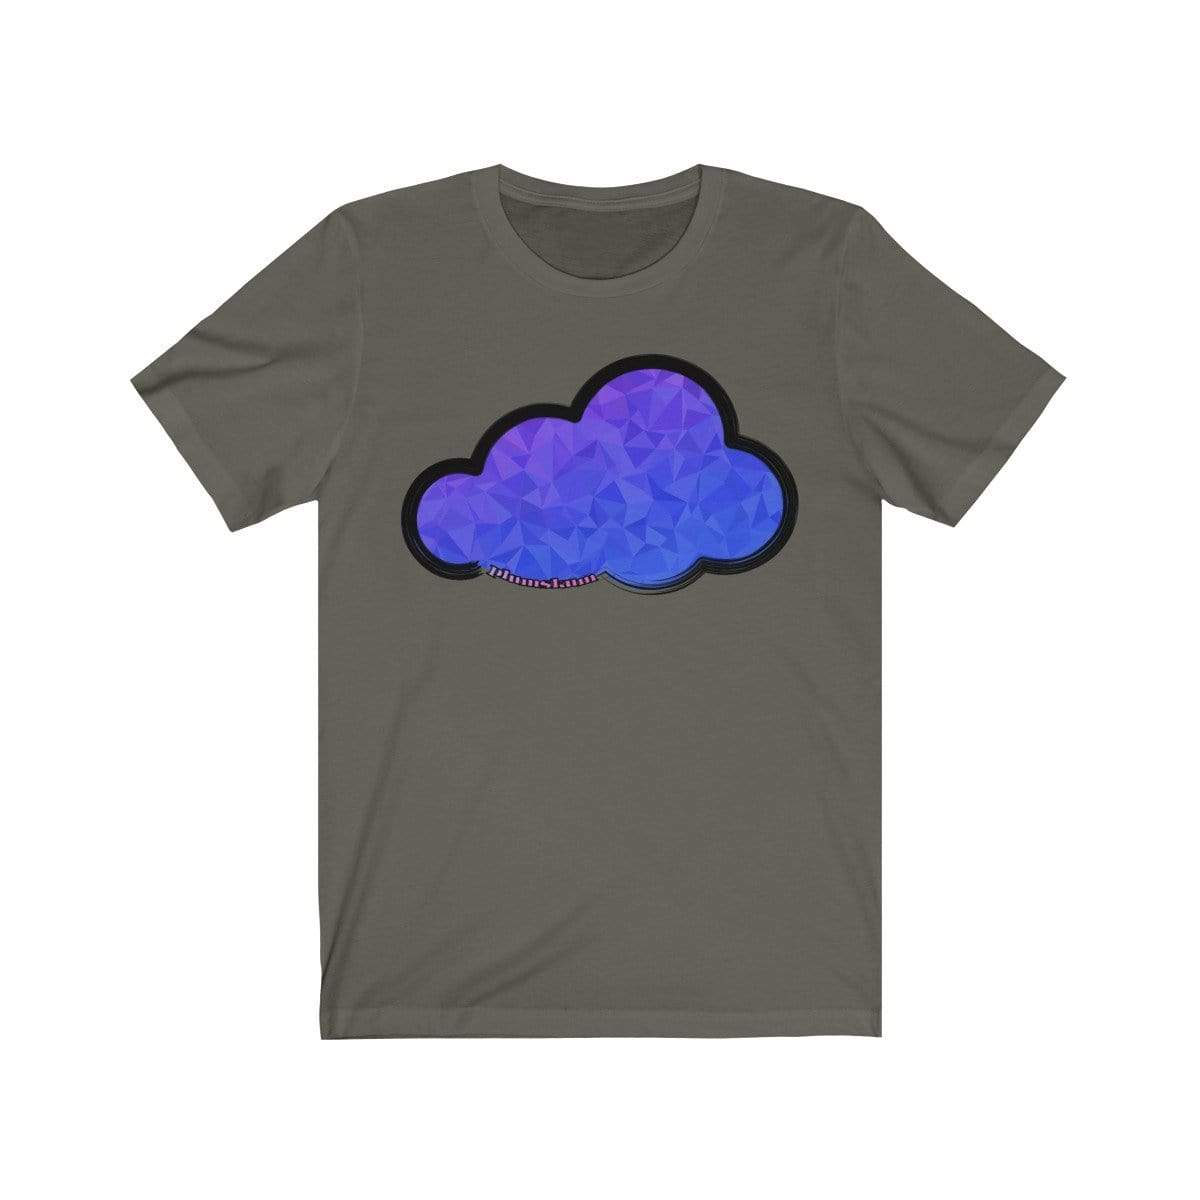 Printify T-Shirt Army / M Plumskum Art Clouds Tee